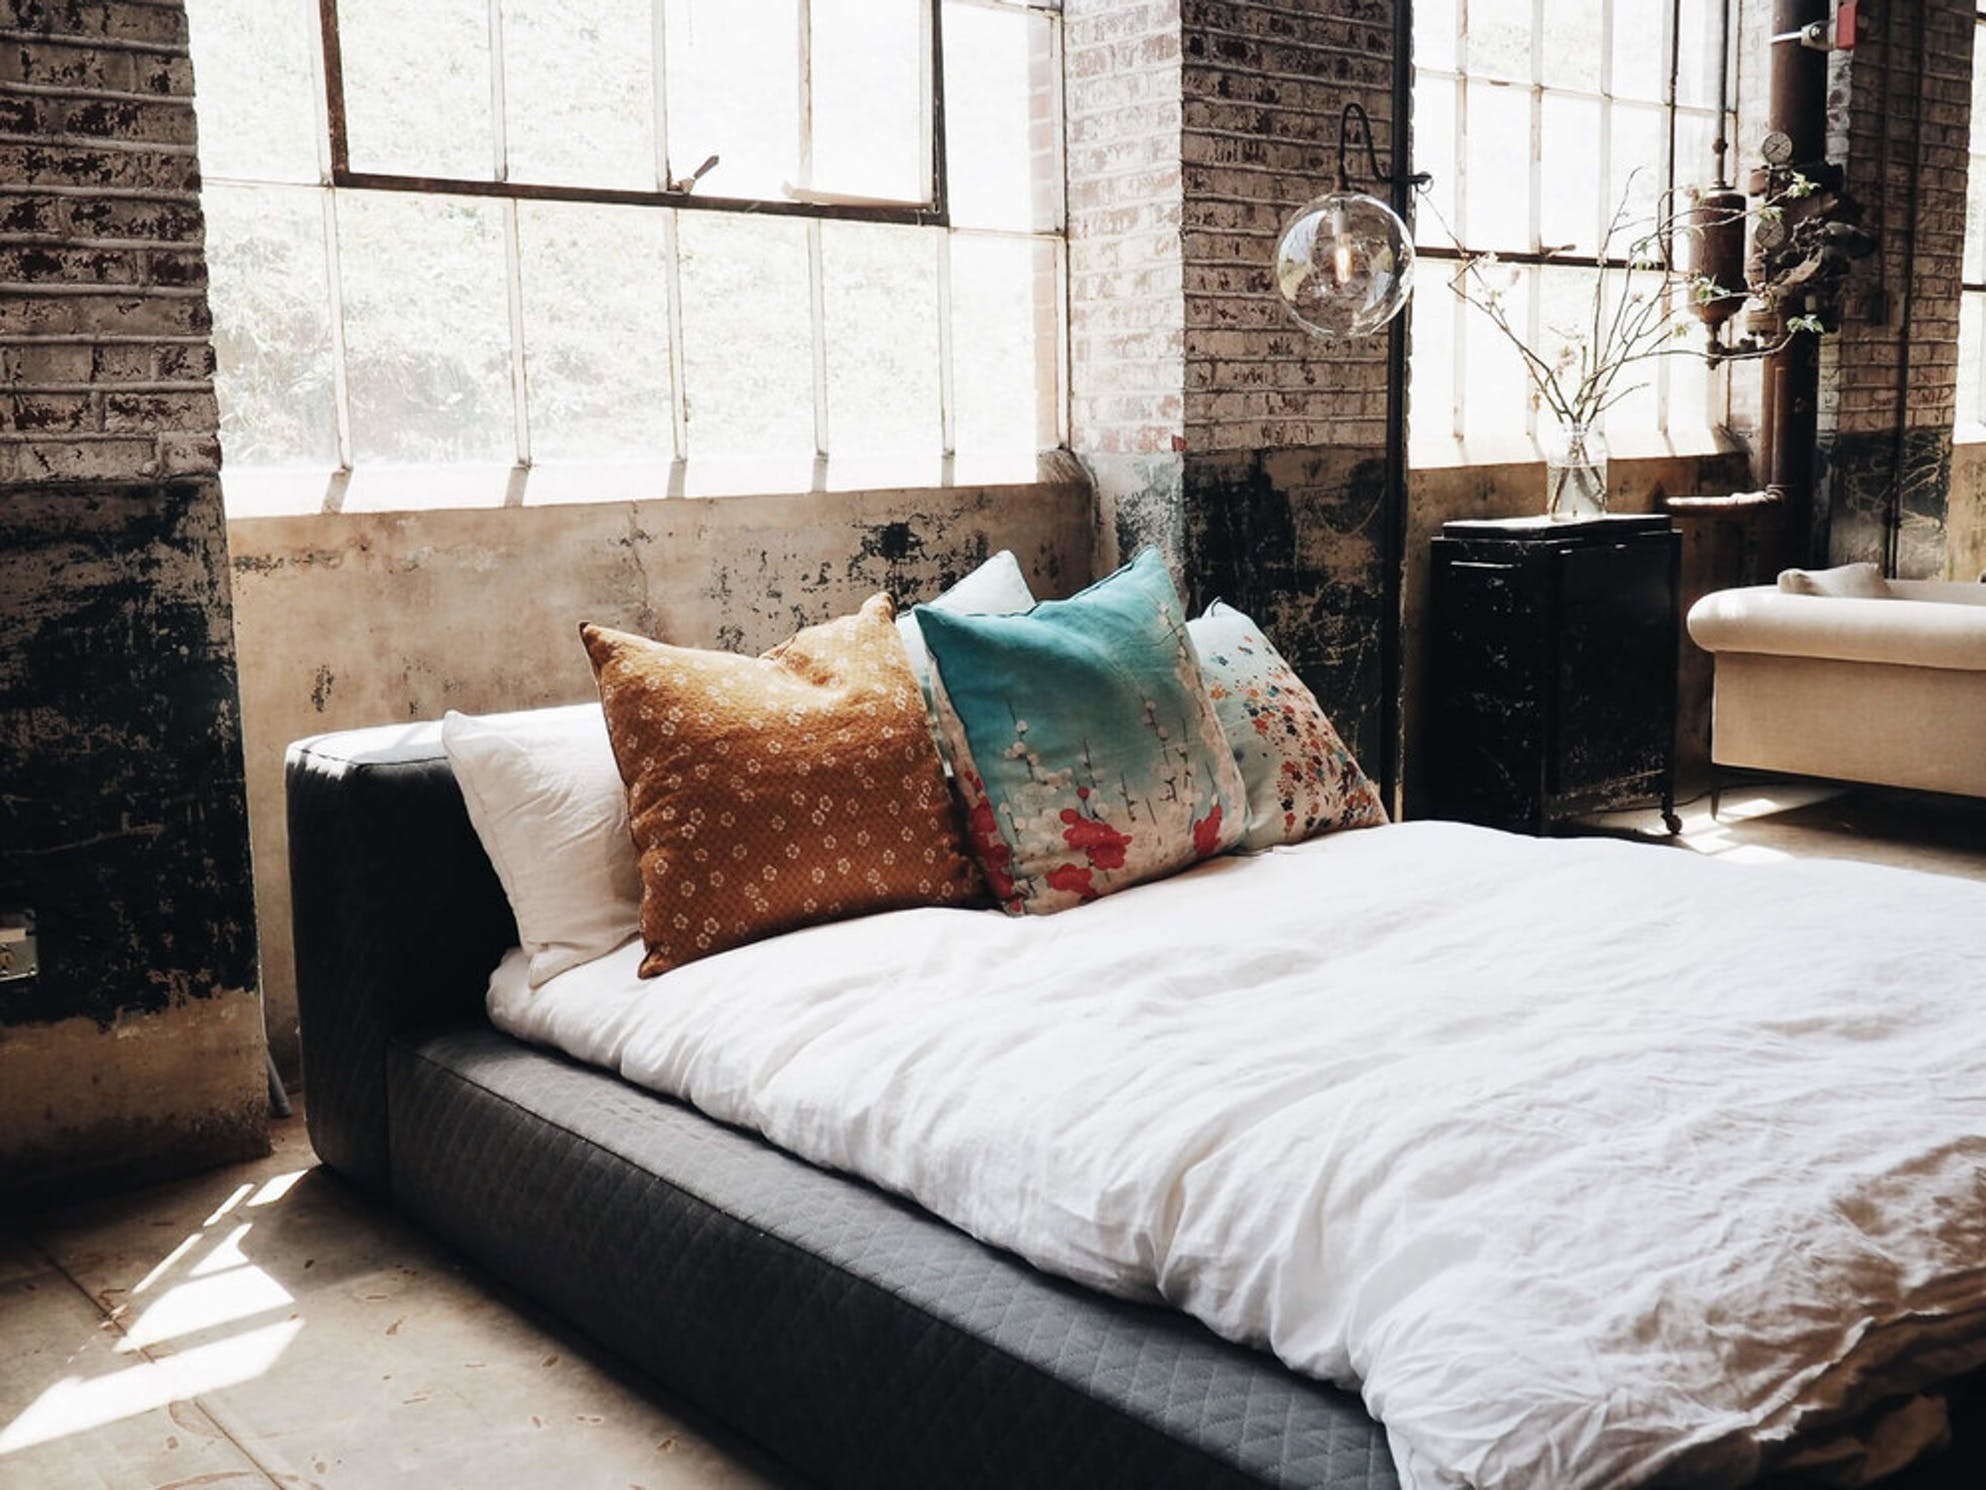 weak sleep on a bed with pillows